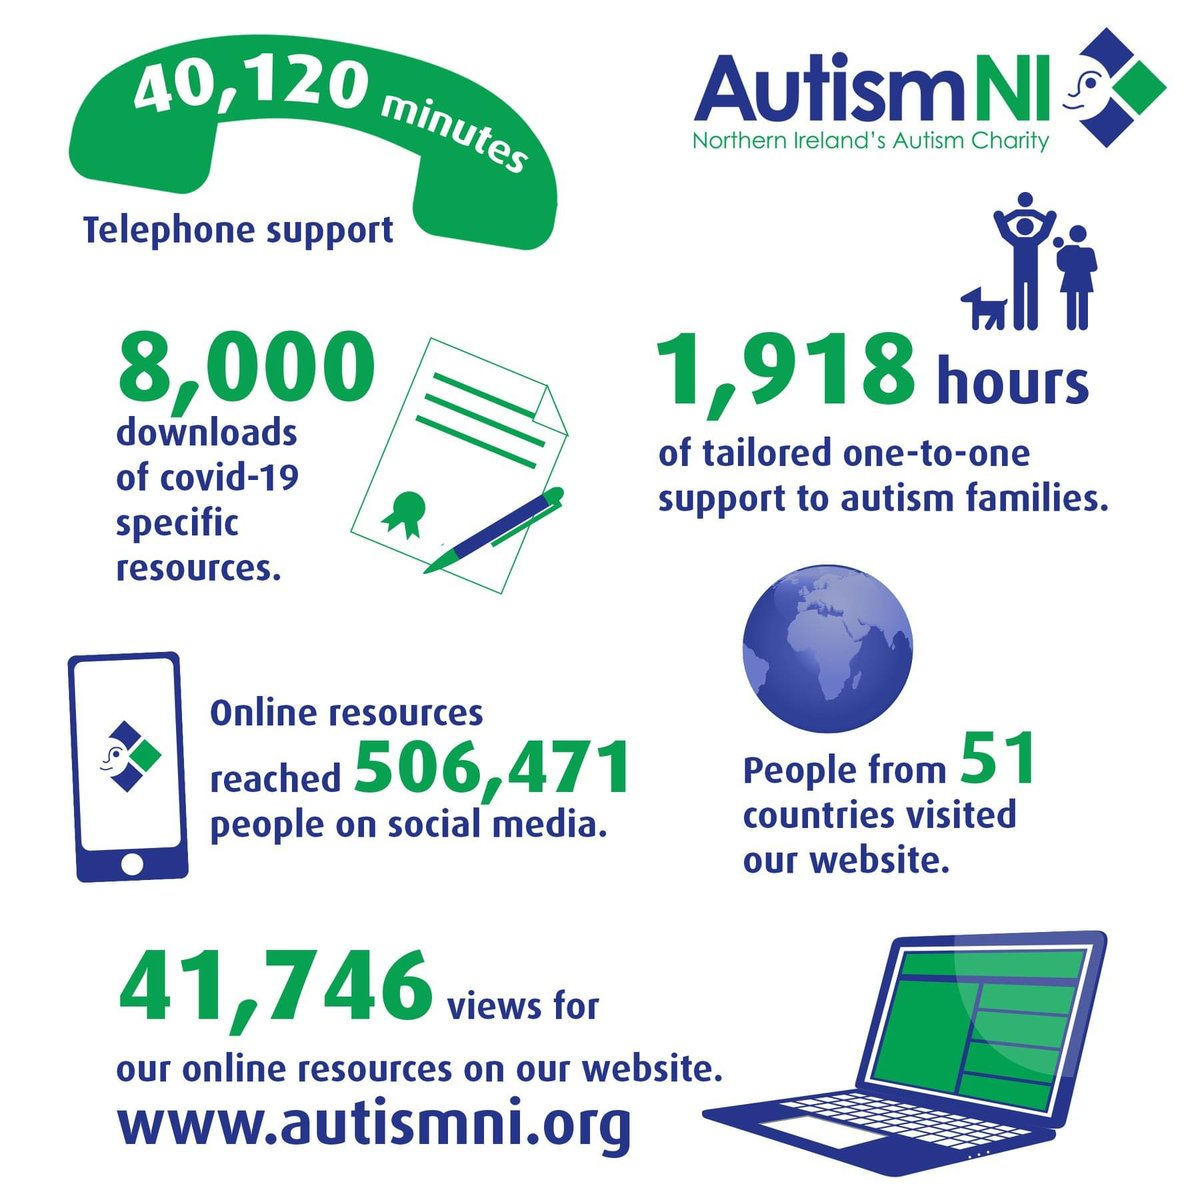 Proud of the Autism NI team who kept going and delivered the following over the last 3 months 💪❤️